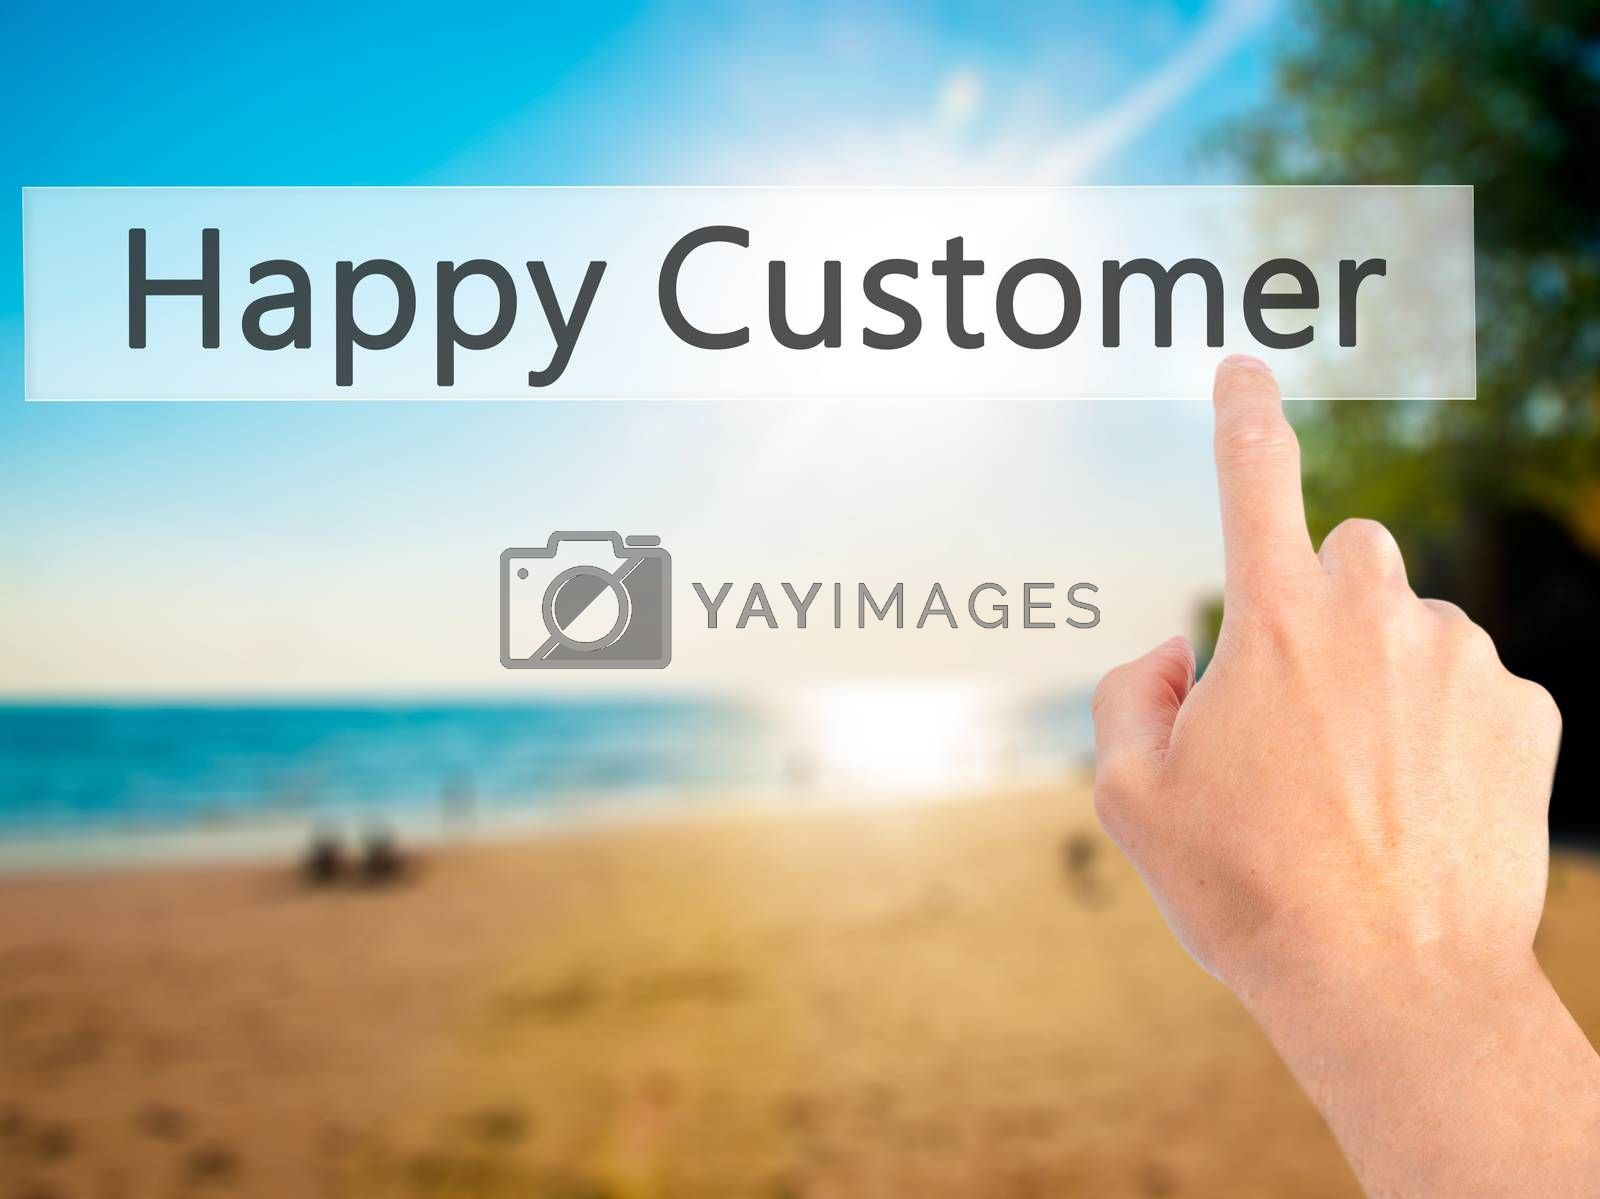 Happy Customer  - Hand pressing a button on blurred background c by jackald